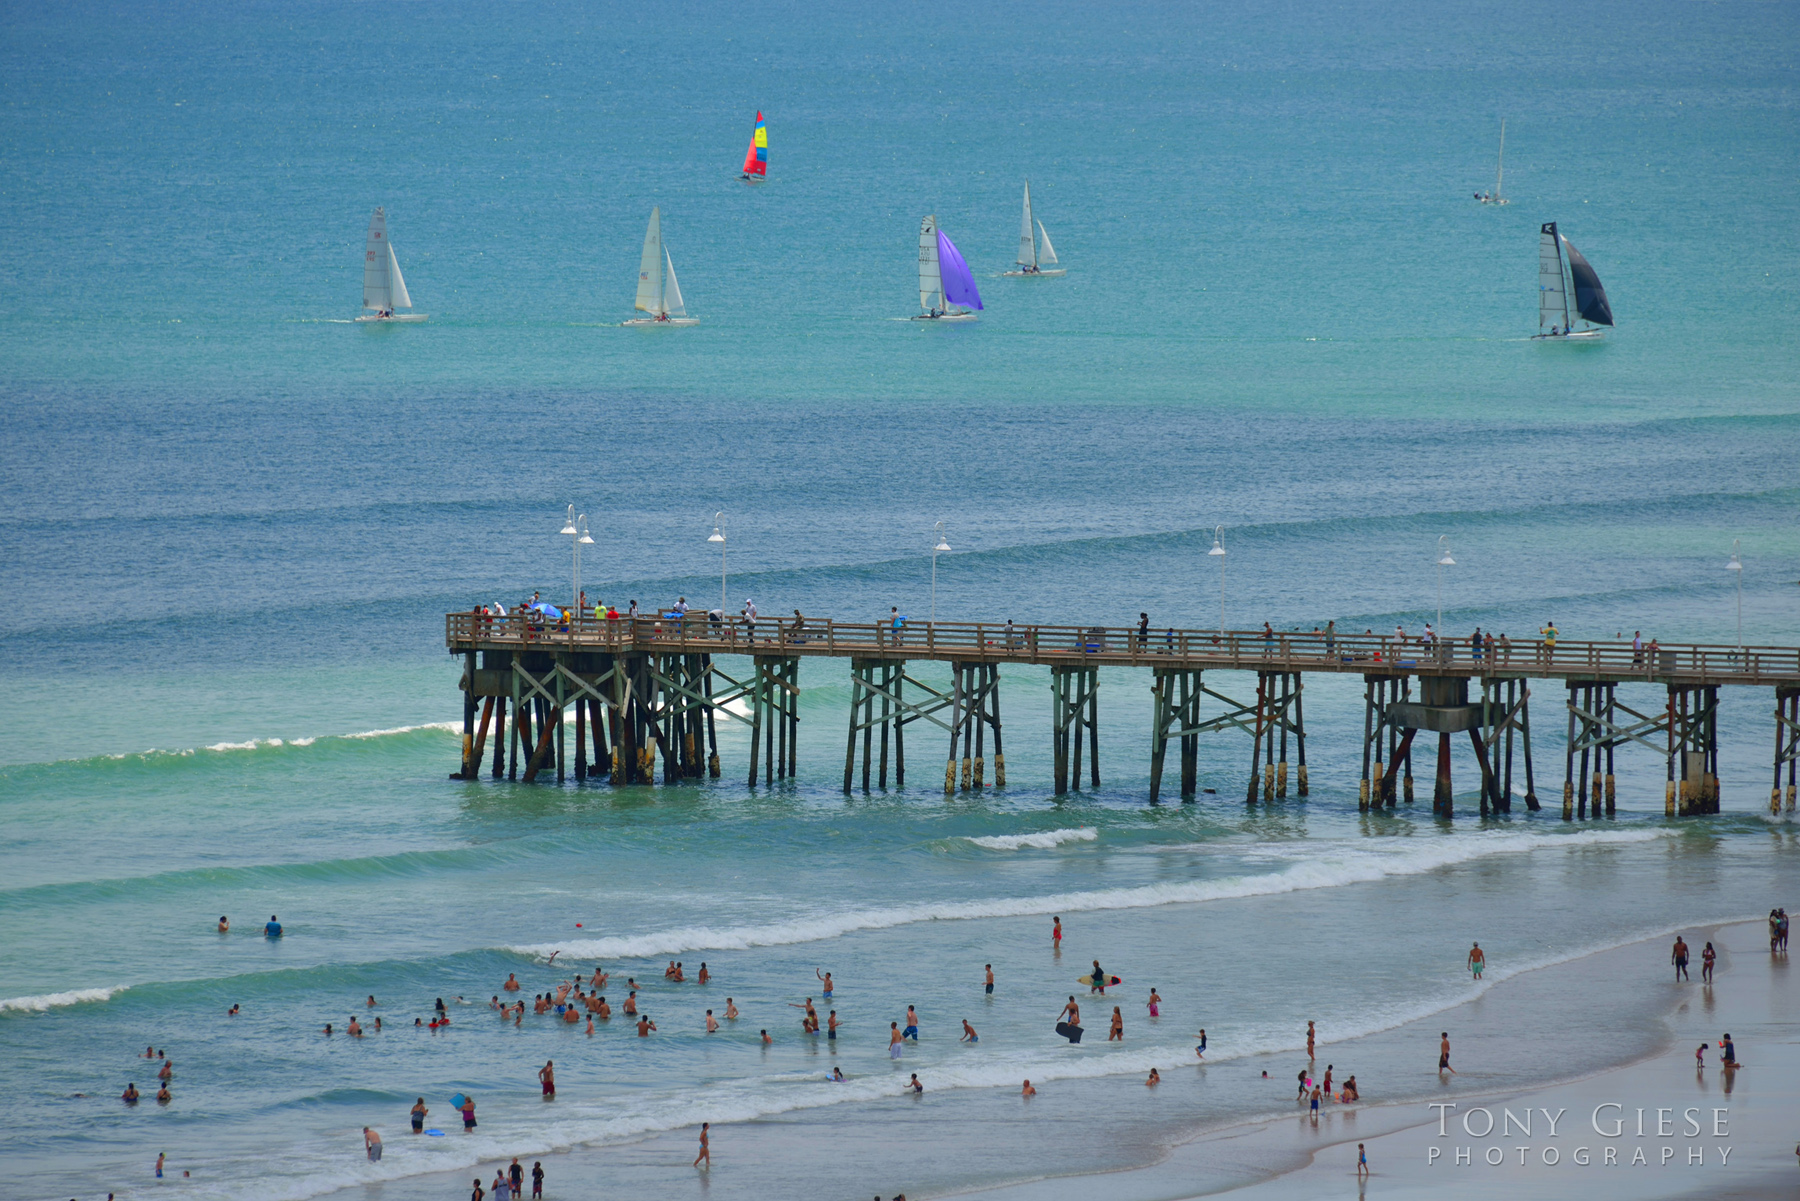 Sailboats near Main Street Pier, Daytona Beach. Photography by Tony Giese